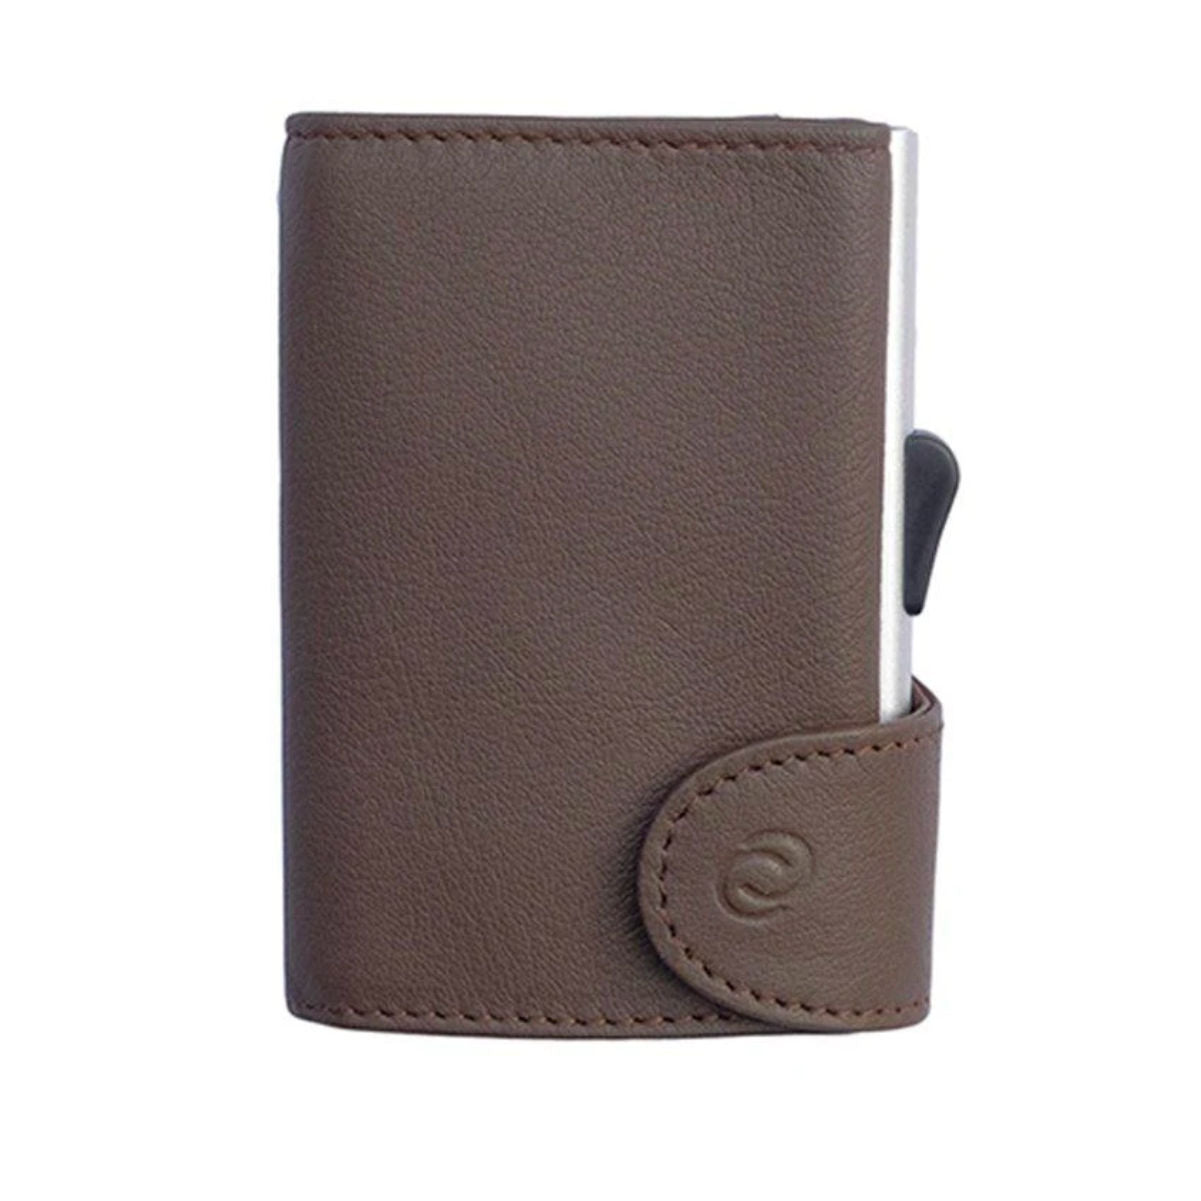 C-Secure Italian Leather RFID wallet, castagno